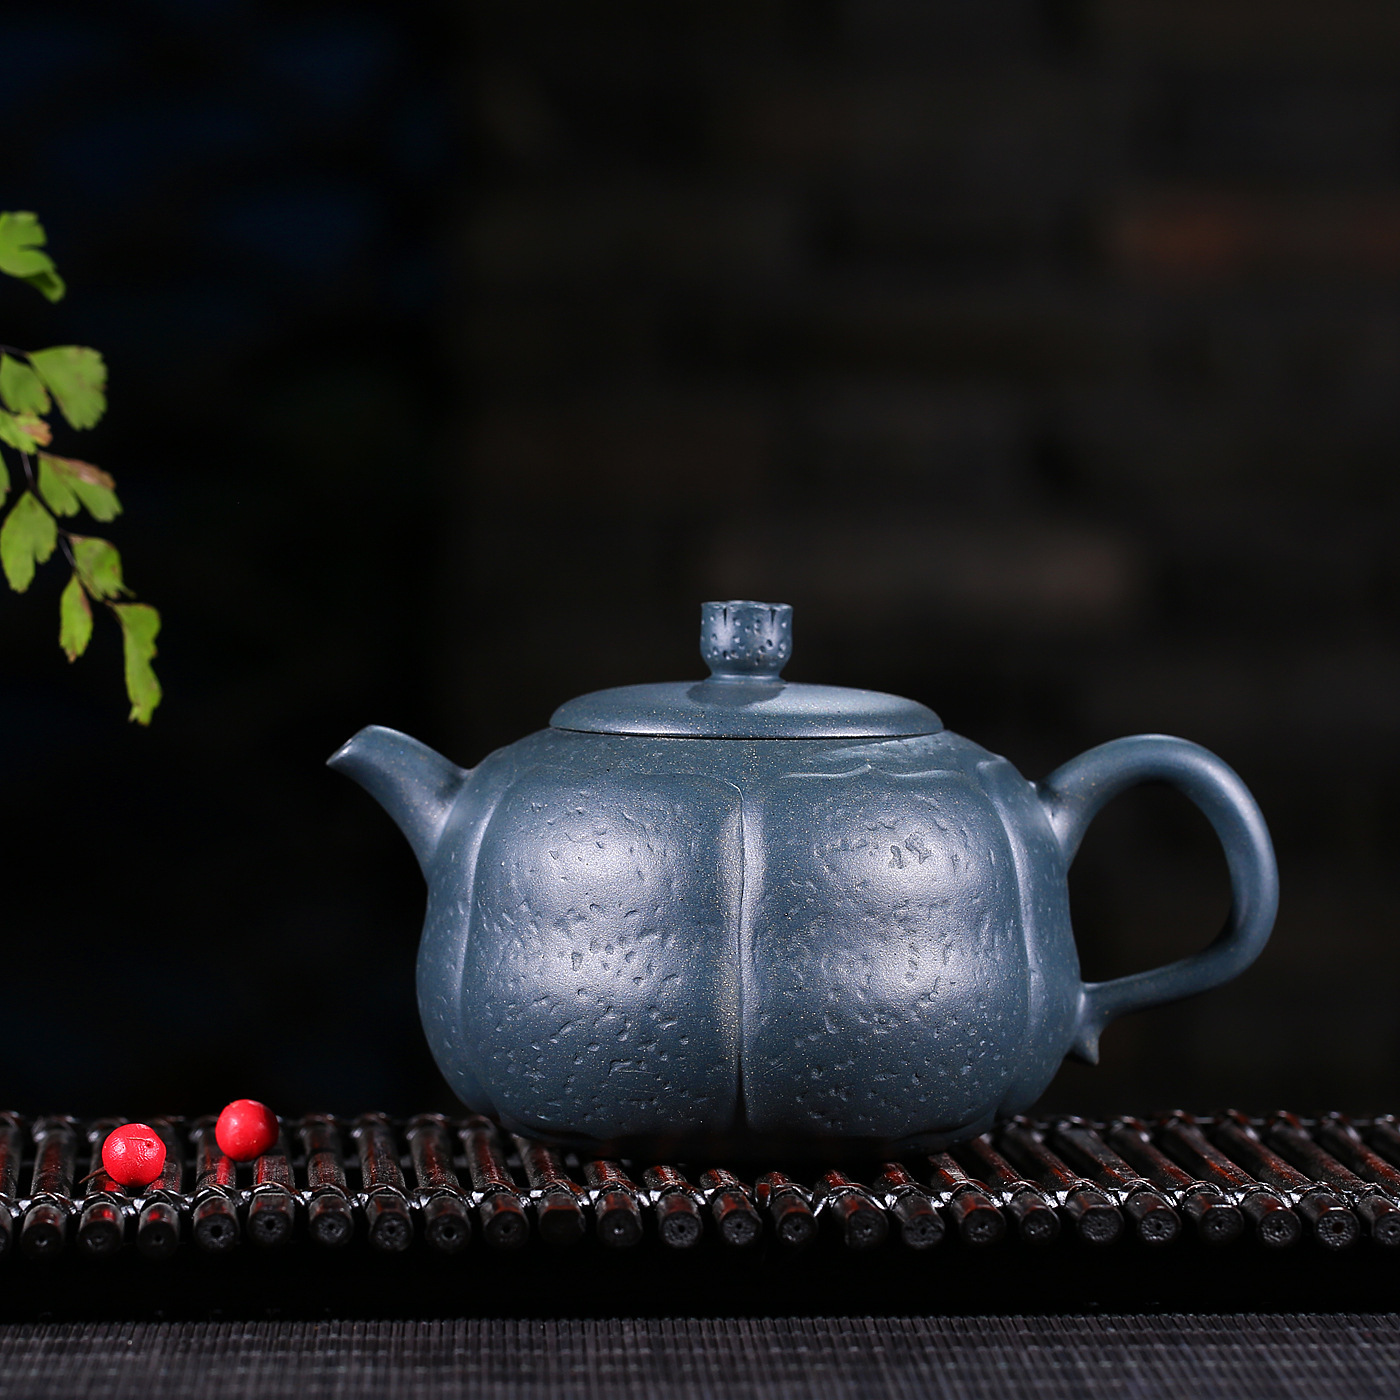 Pottery Teapot Full Manual Bud Famous Hu You Jun Azure Mud Kungfu Online Teapot Tea Set Wholesale A Piece Of Generation HairPottery Teapot Full Manual Bud Famous Hu You Jun Azure Mud Kungfu Online Teapot Tea Set Wholesale A Piece Of Generation Hair